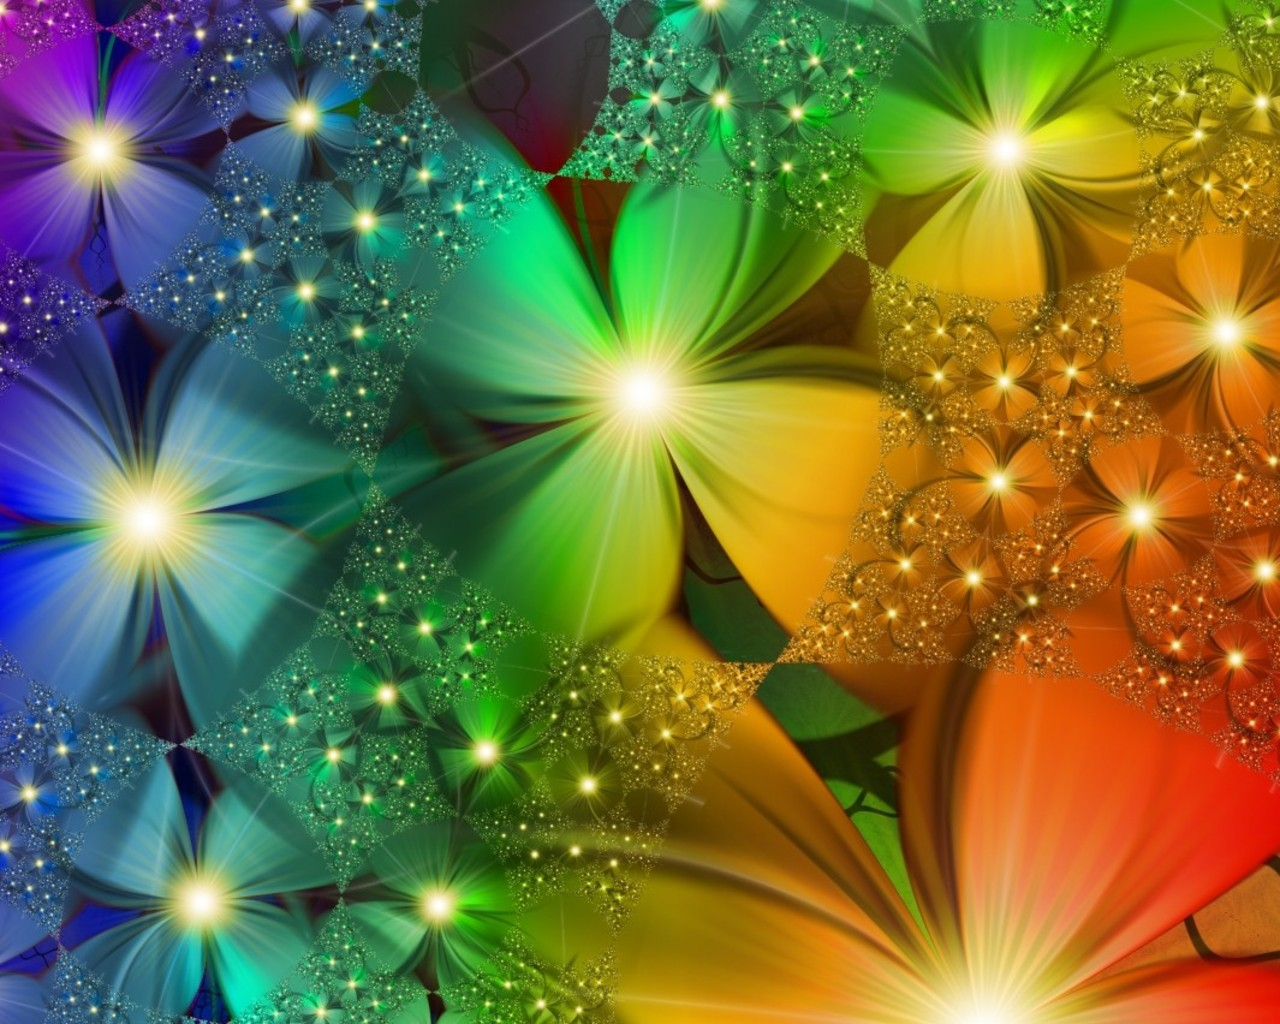 Cool Colorful Wallpaper Backgrounds